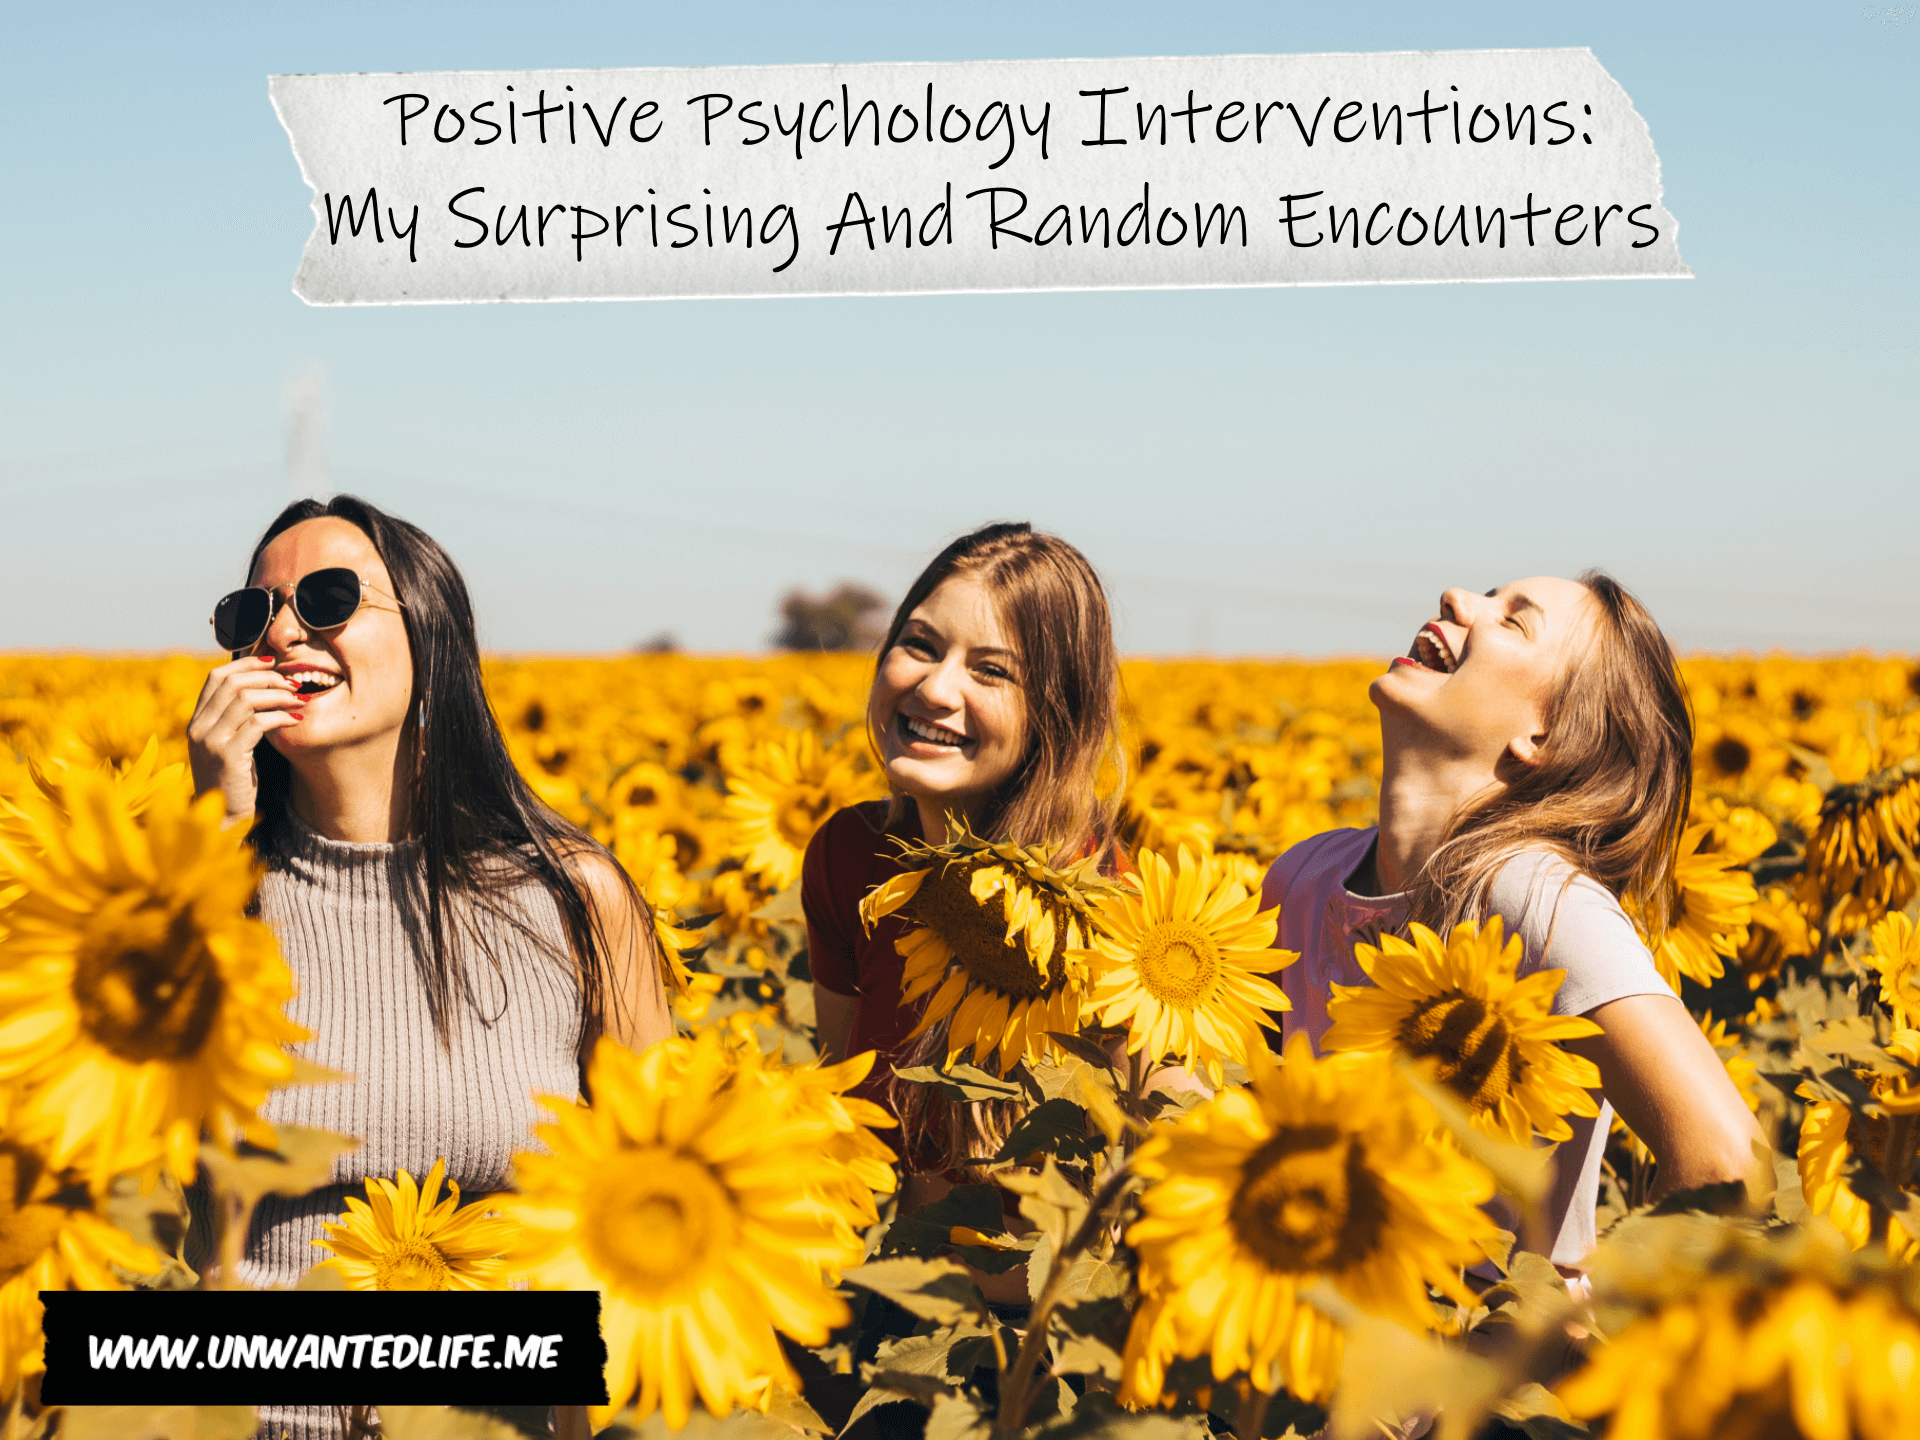 Three women laughing and smiling in a sunflower field with the title of the article - Positive Psychology Interventions: My Surprising And Random Encounters - across the top of the image